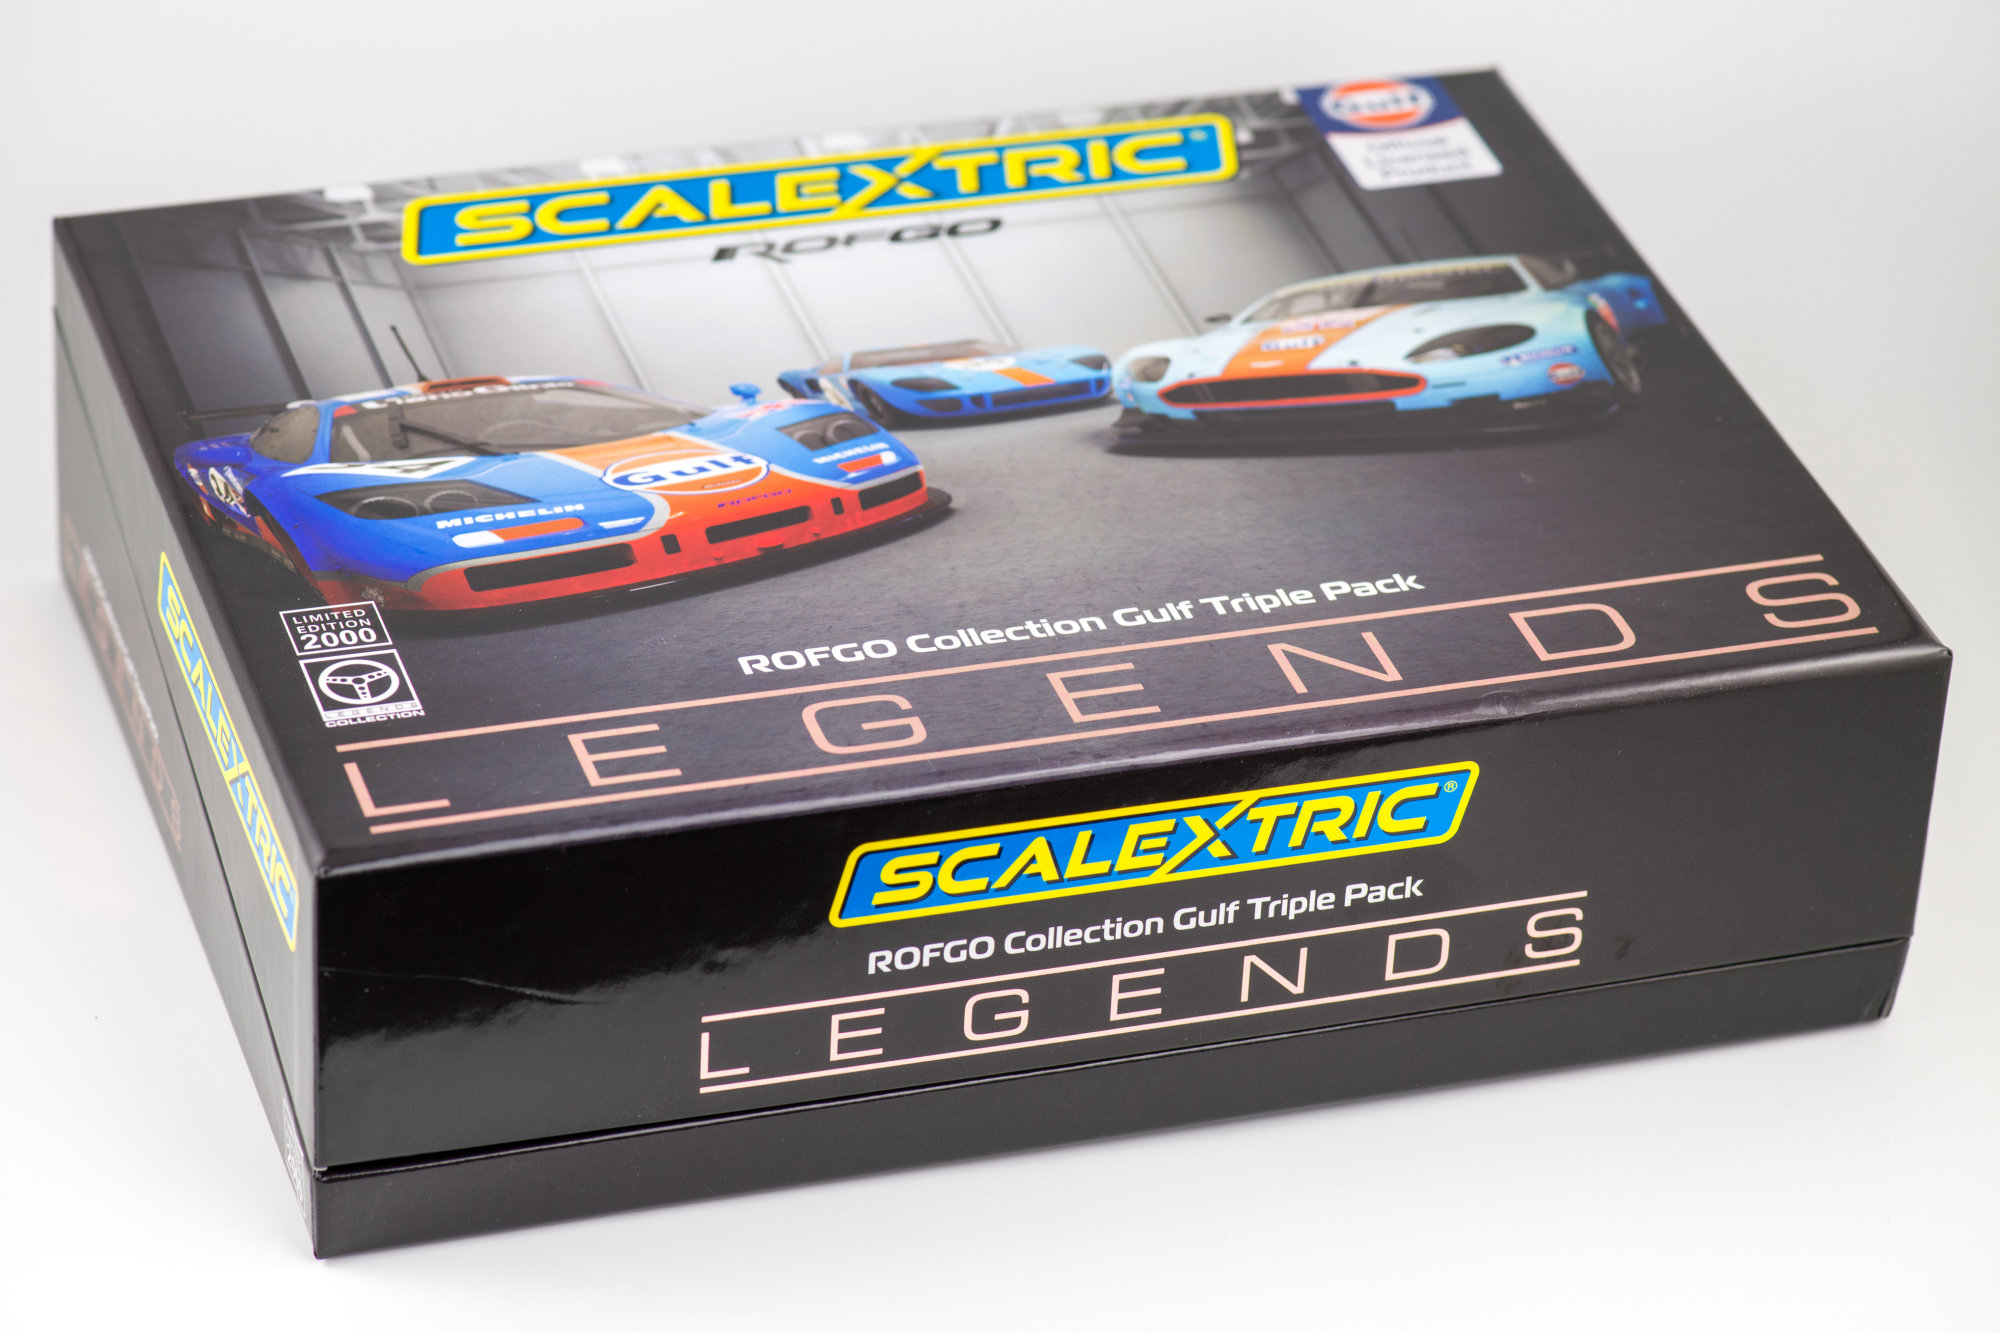 Scalextric ROFGO Collection Gulf Triple Pack